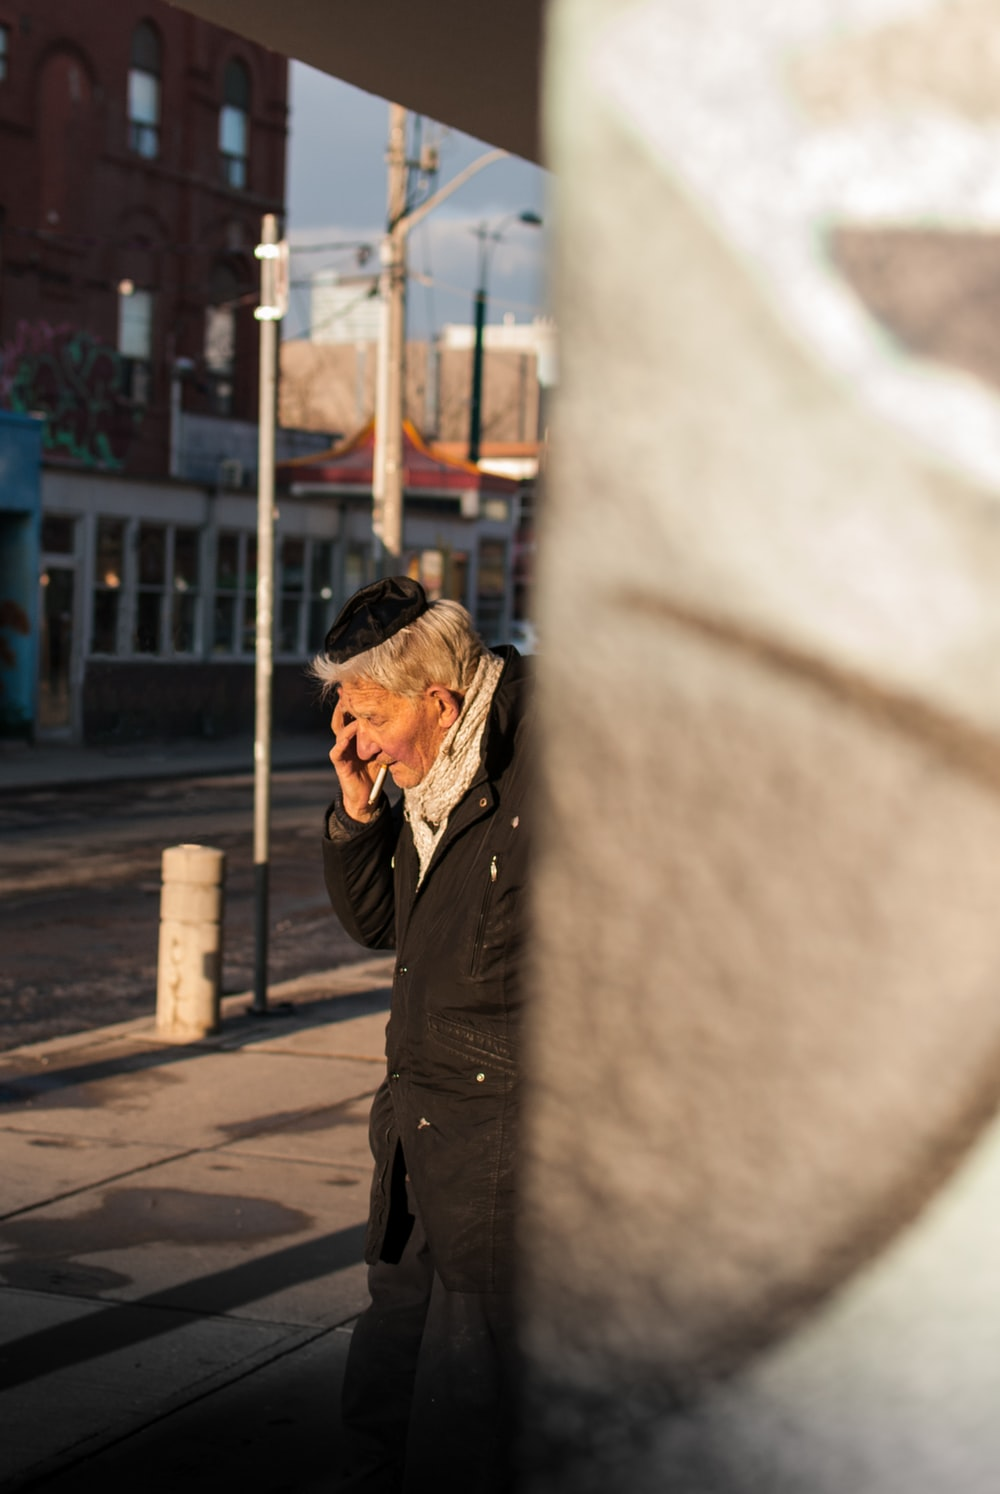 man calling on phone near the street